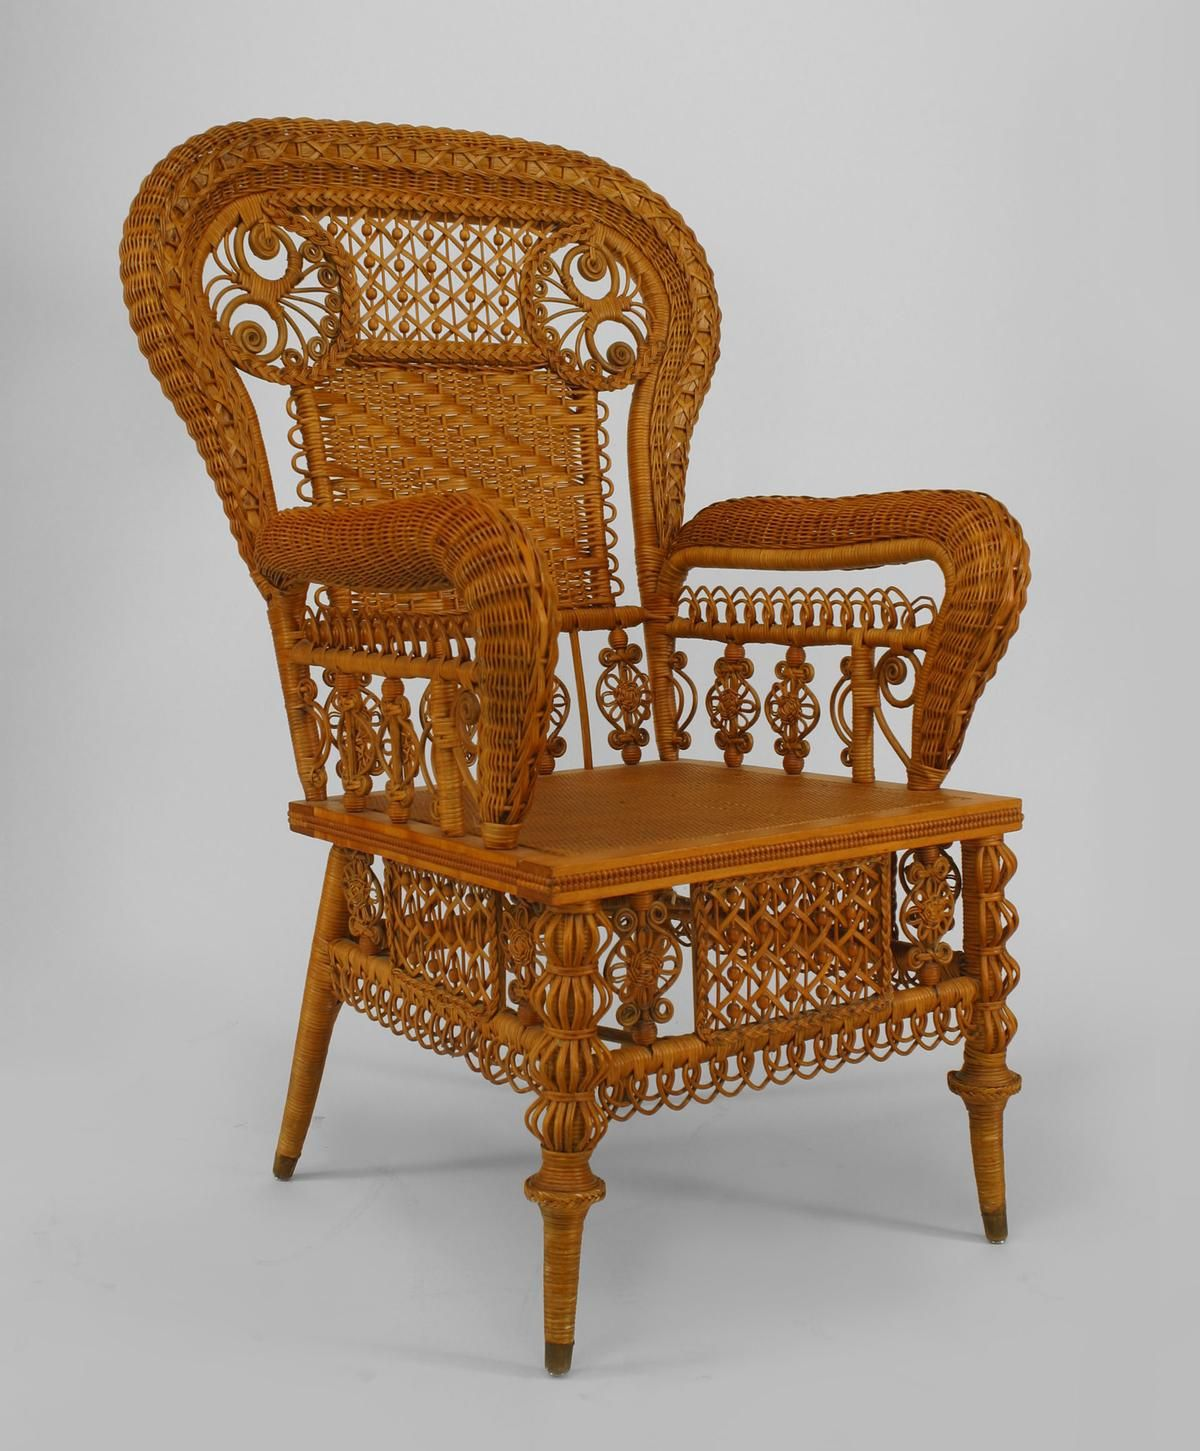 American Victorian Pre 1897 Ornate Natural Wicker Arm Chair With Woven  Panel Back, And